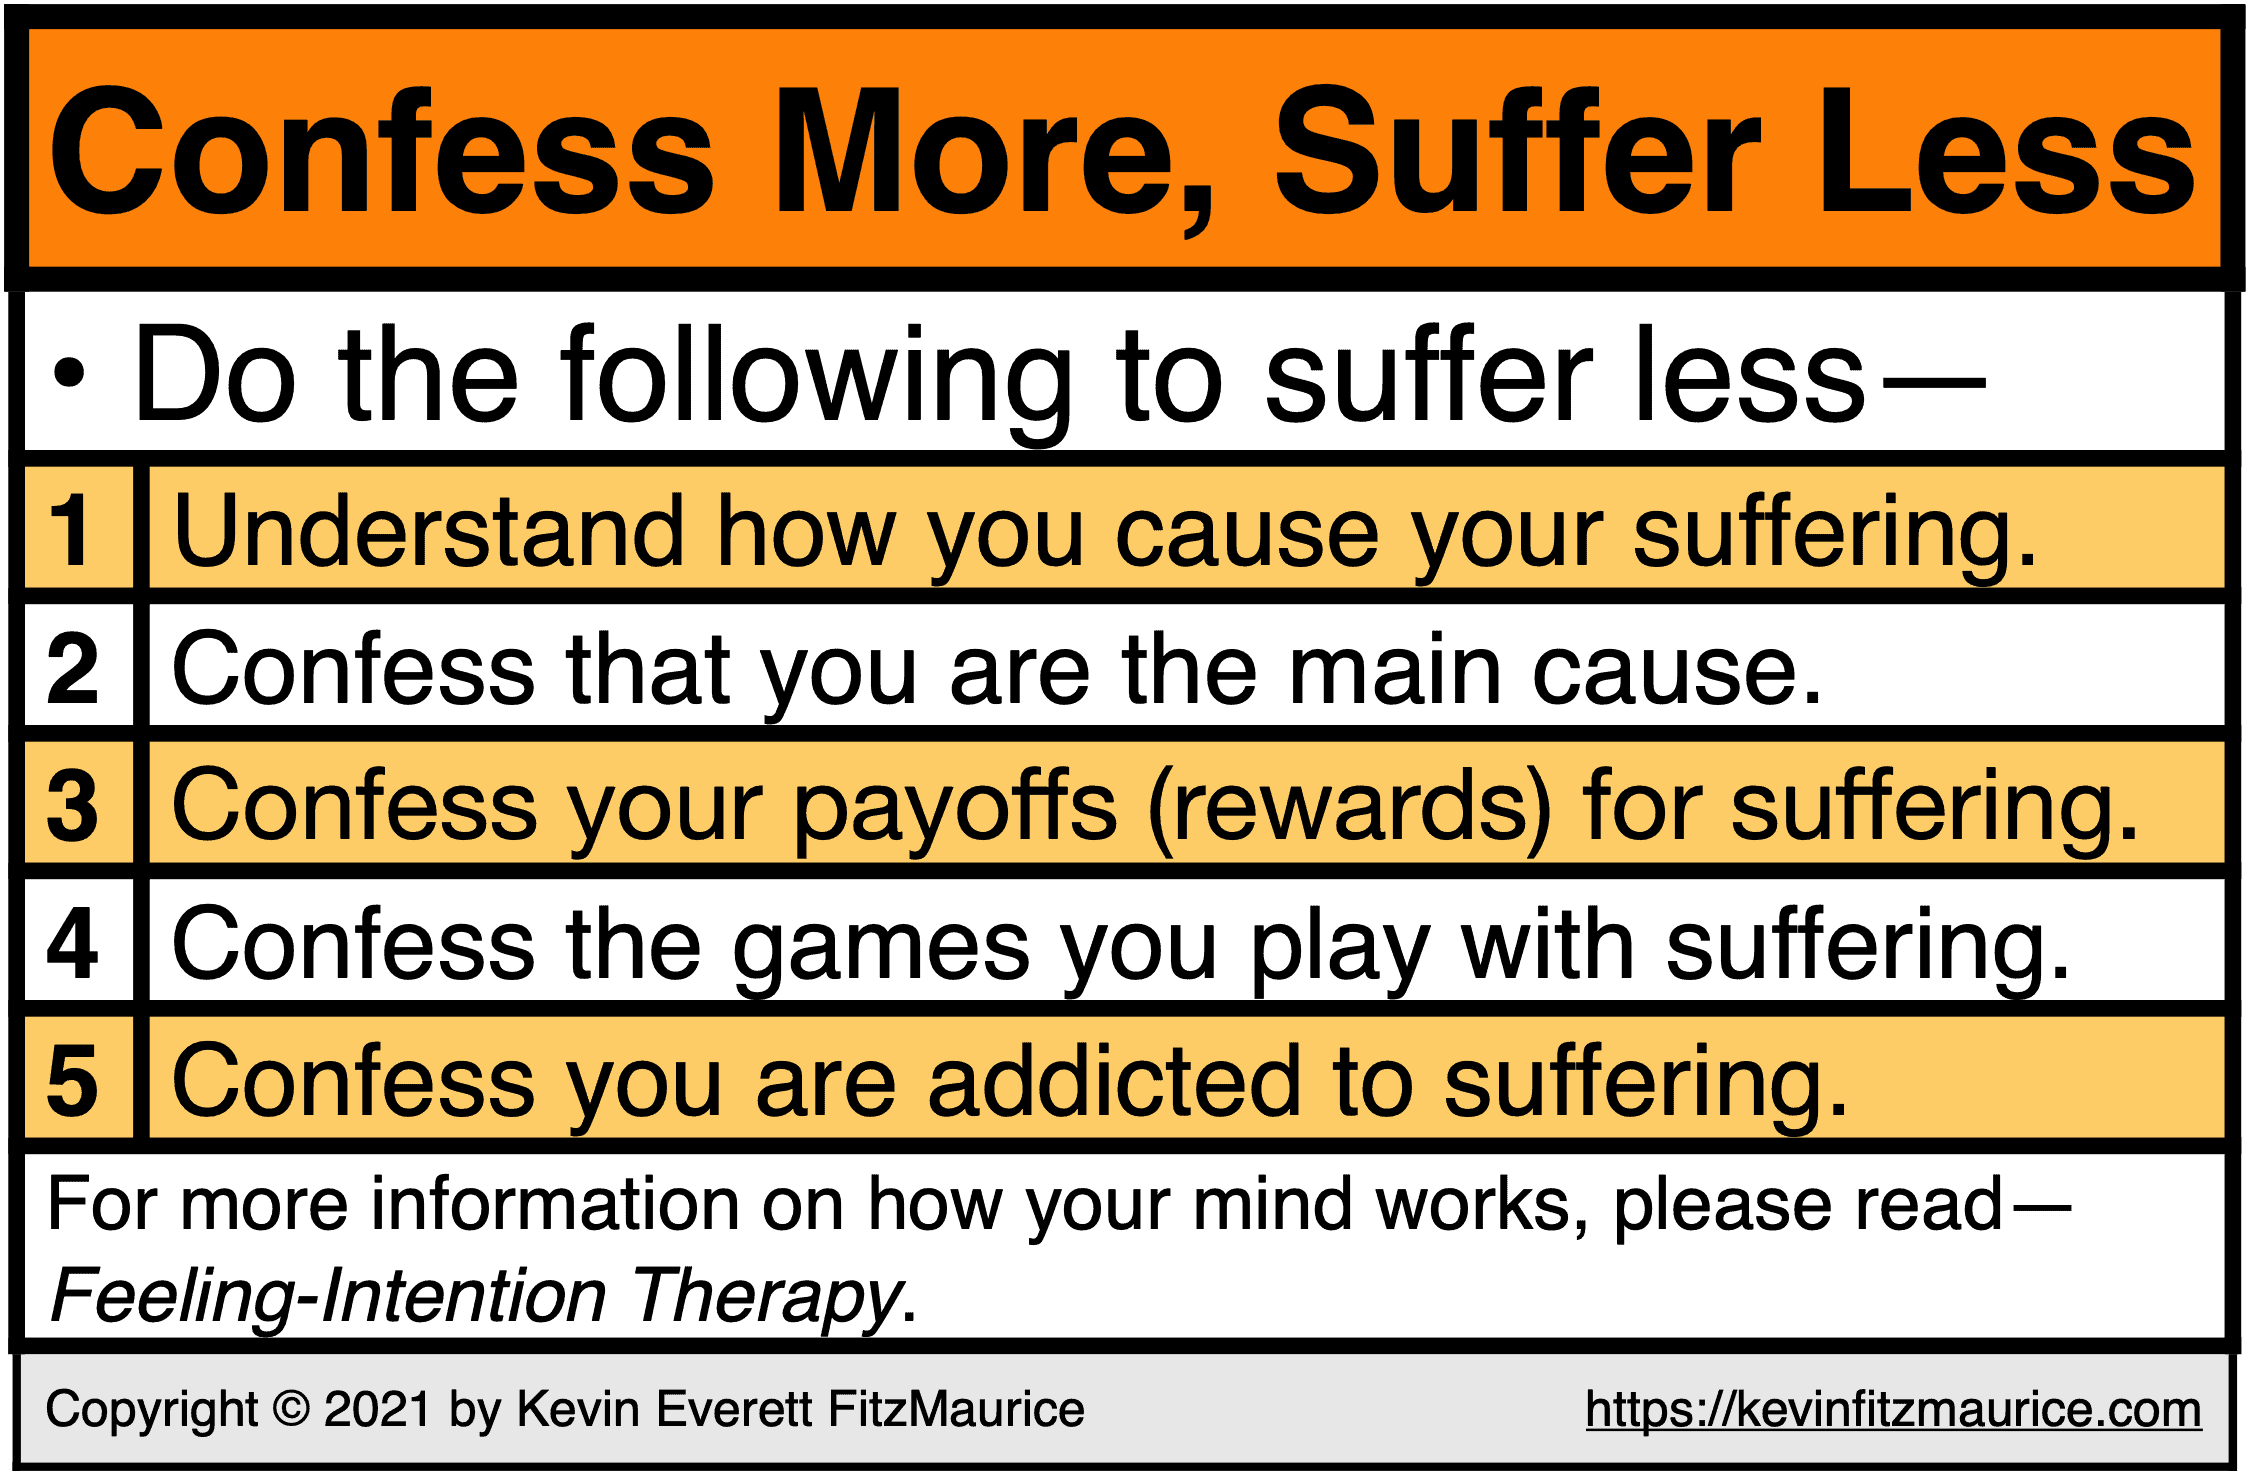 To Suffer Less, Confess More